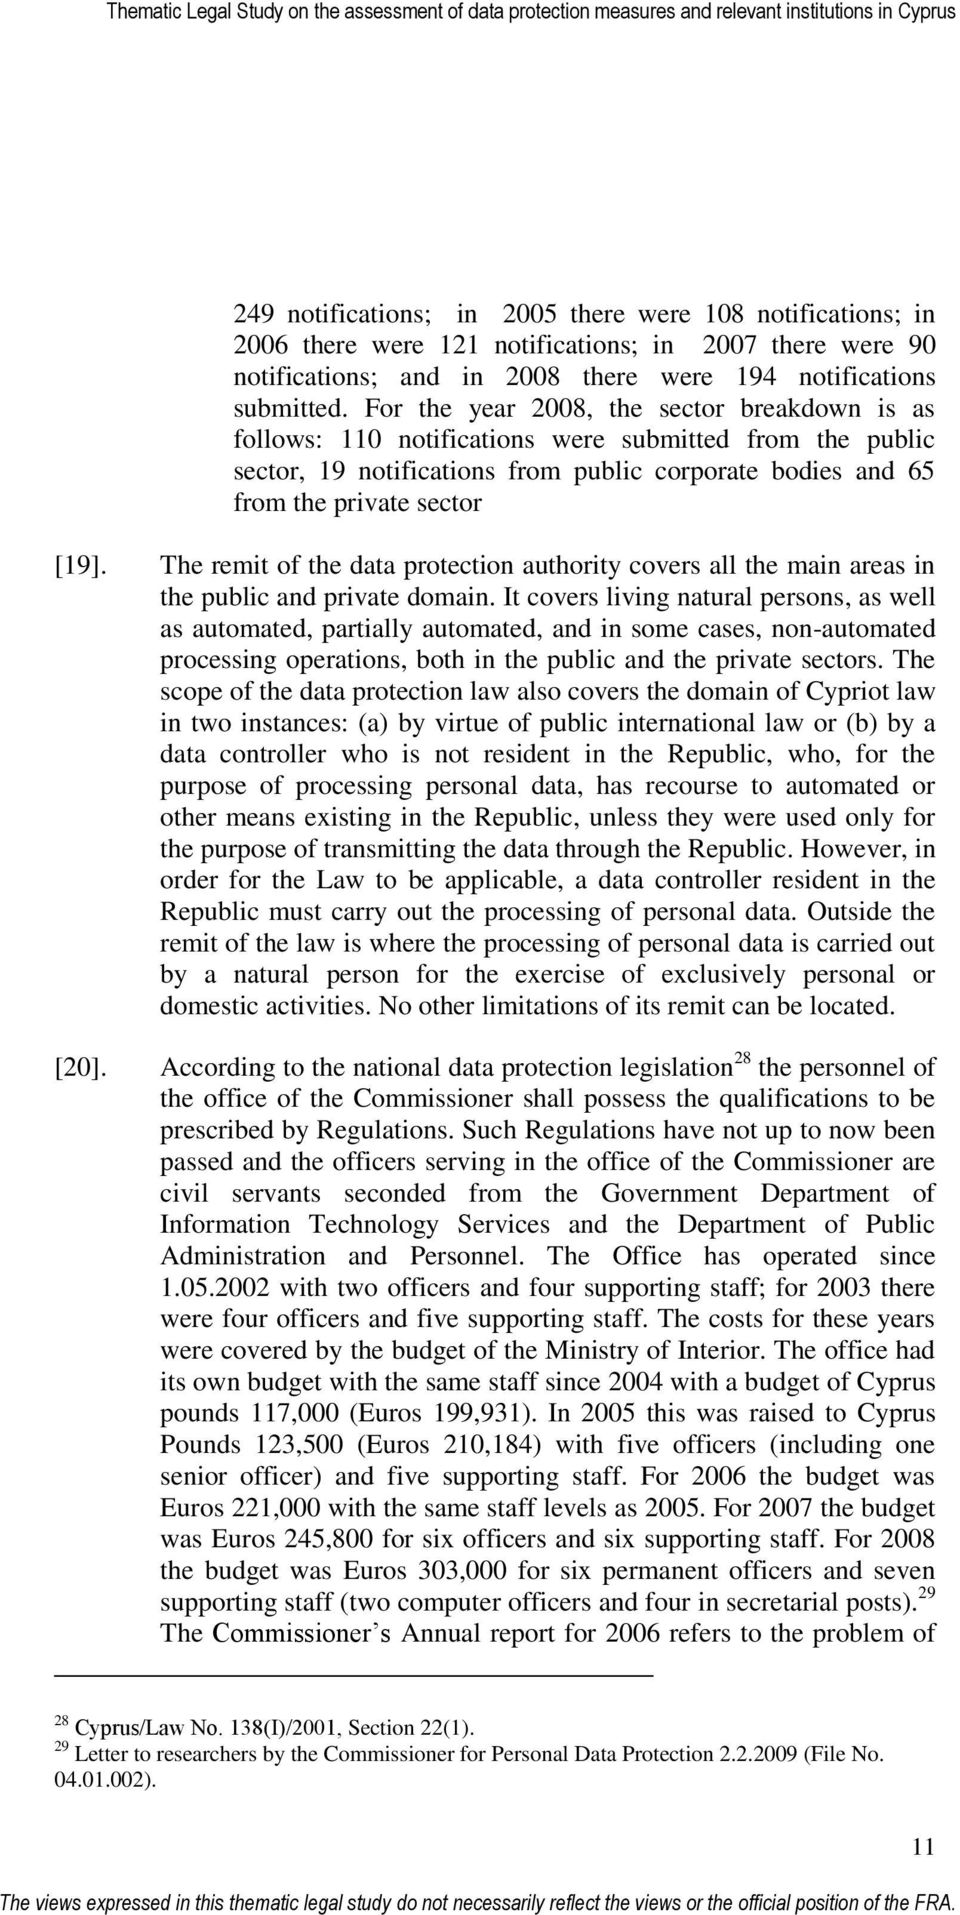 The remit of the data protection authority covers all the main areas in the public and private domain.